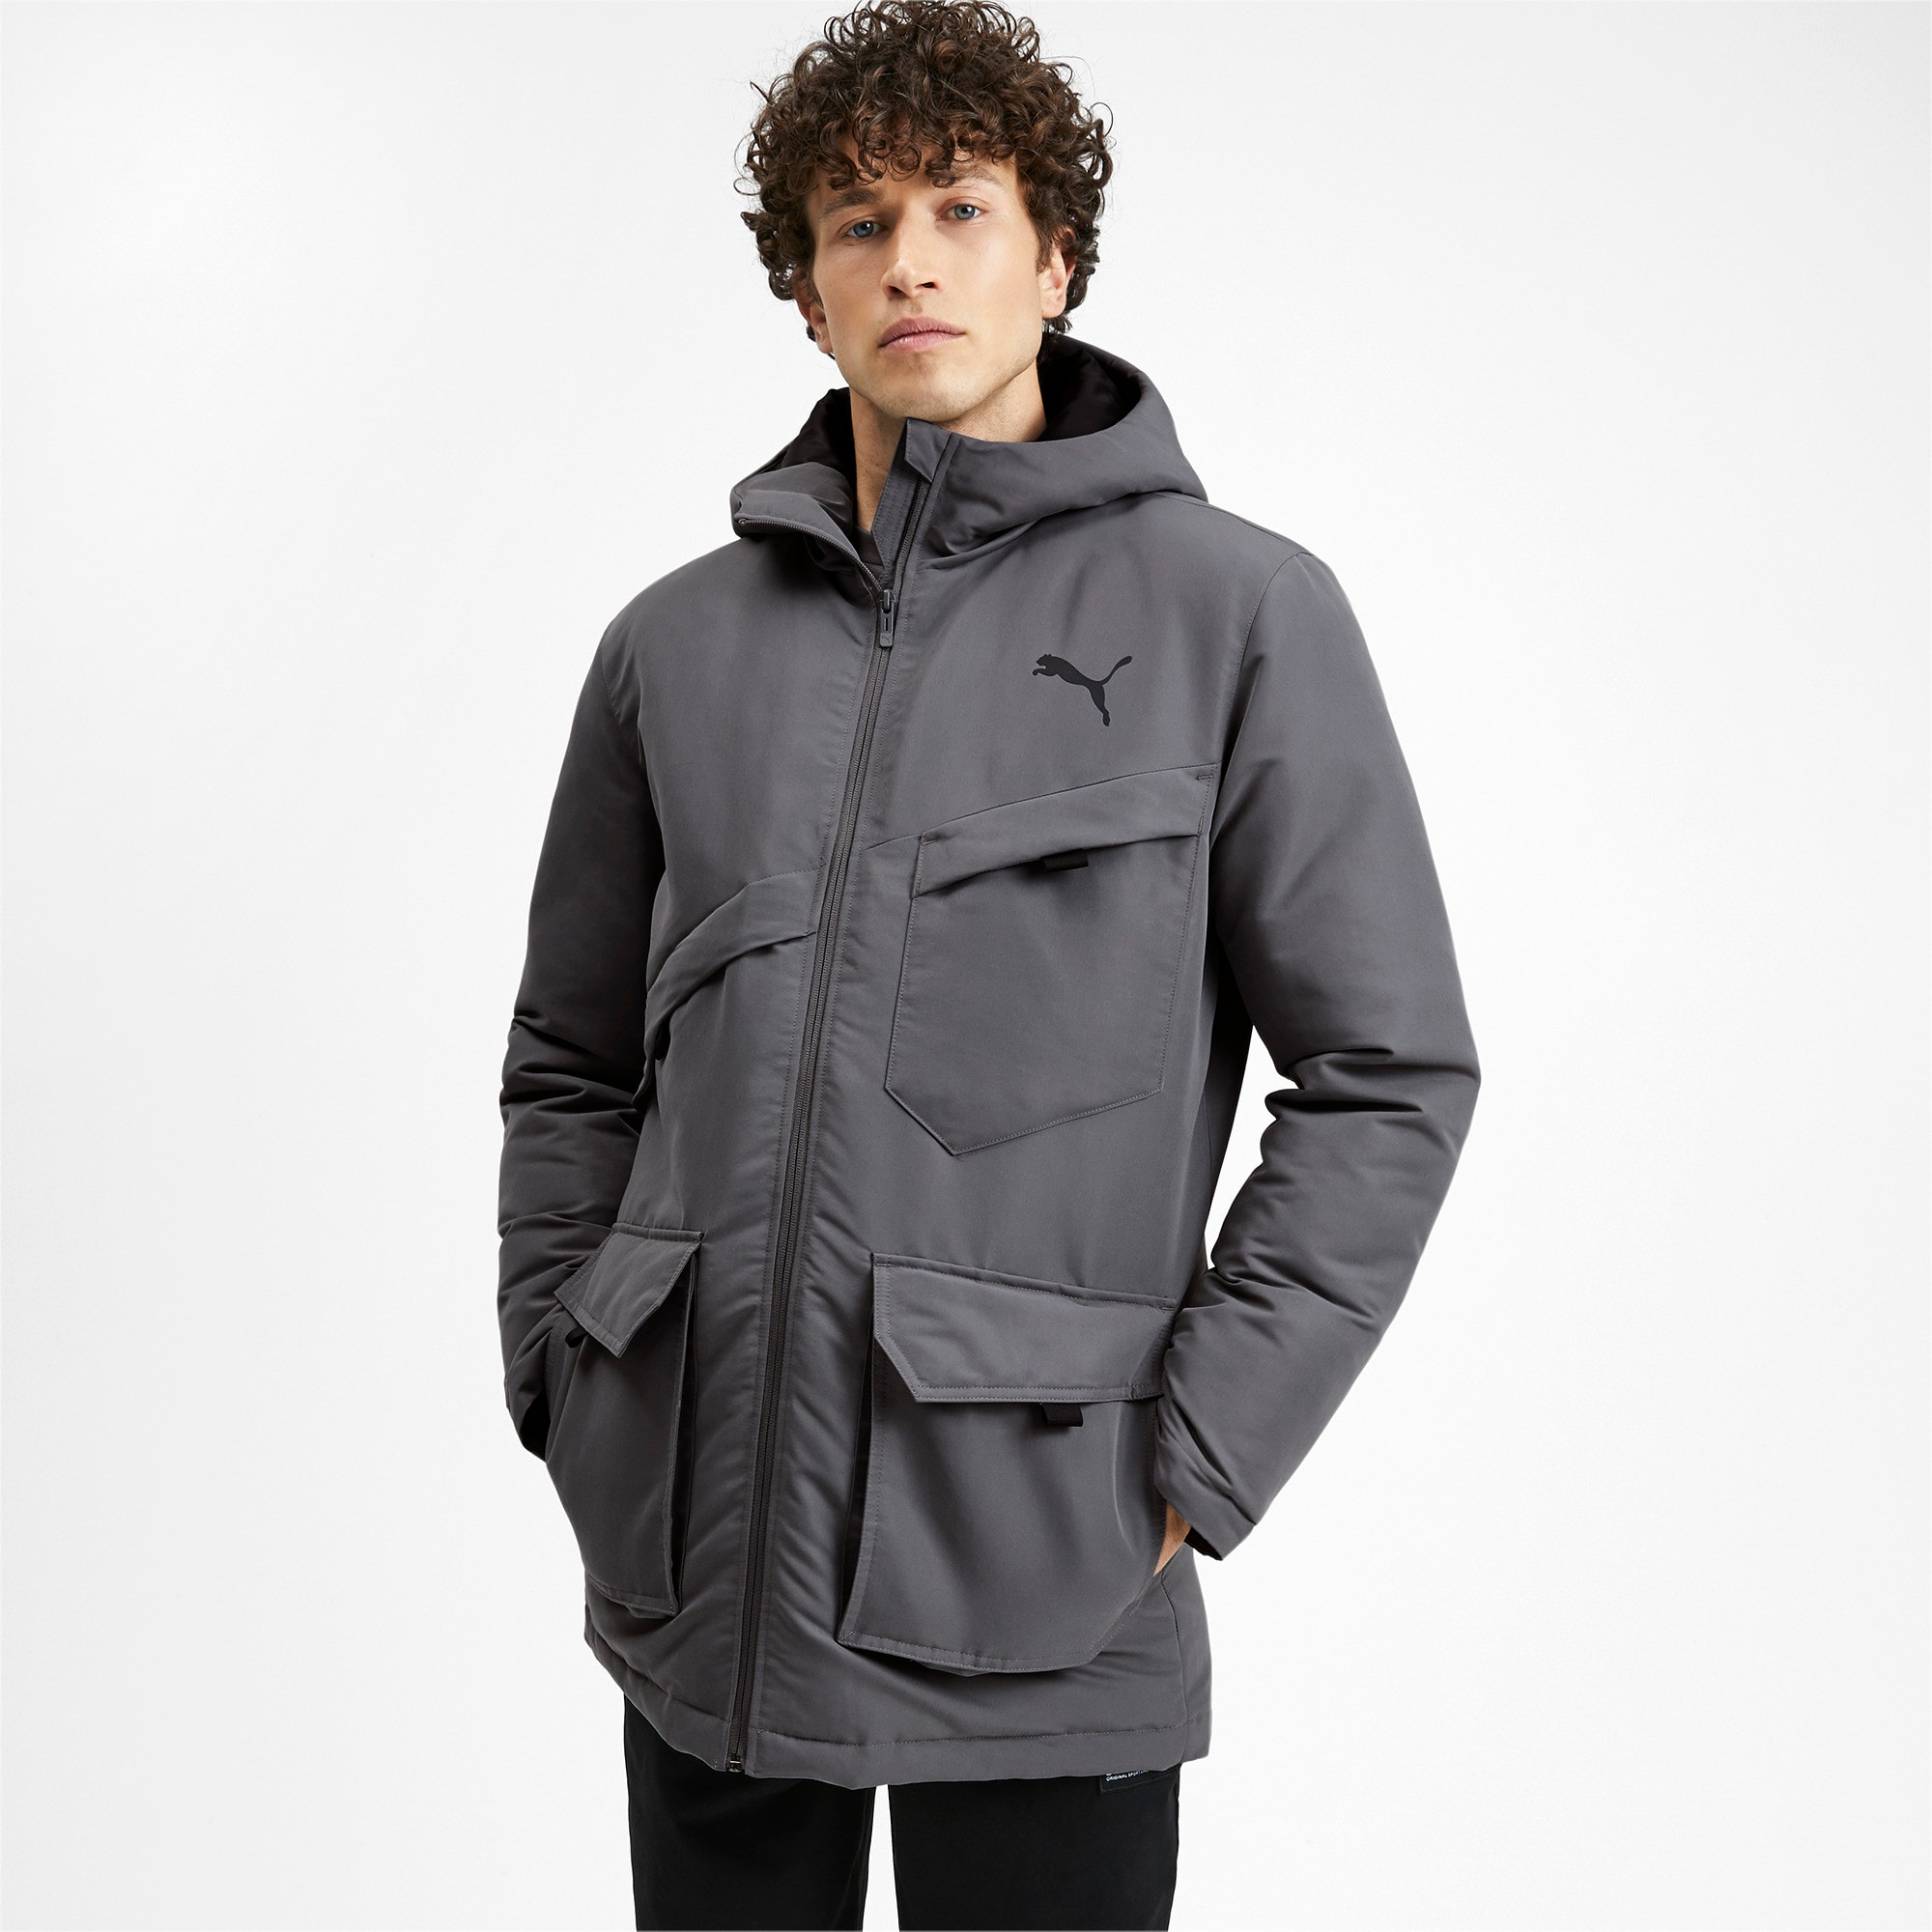 Thumbnail 2 of Essentials Protect Men's Jacket, CASTLEROCK, medium